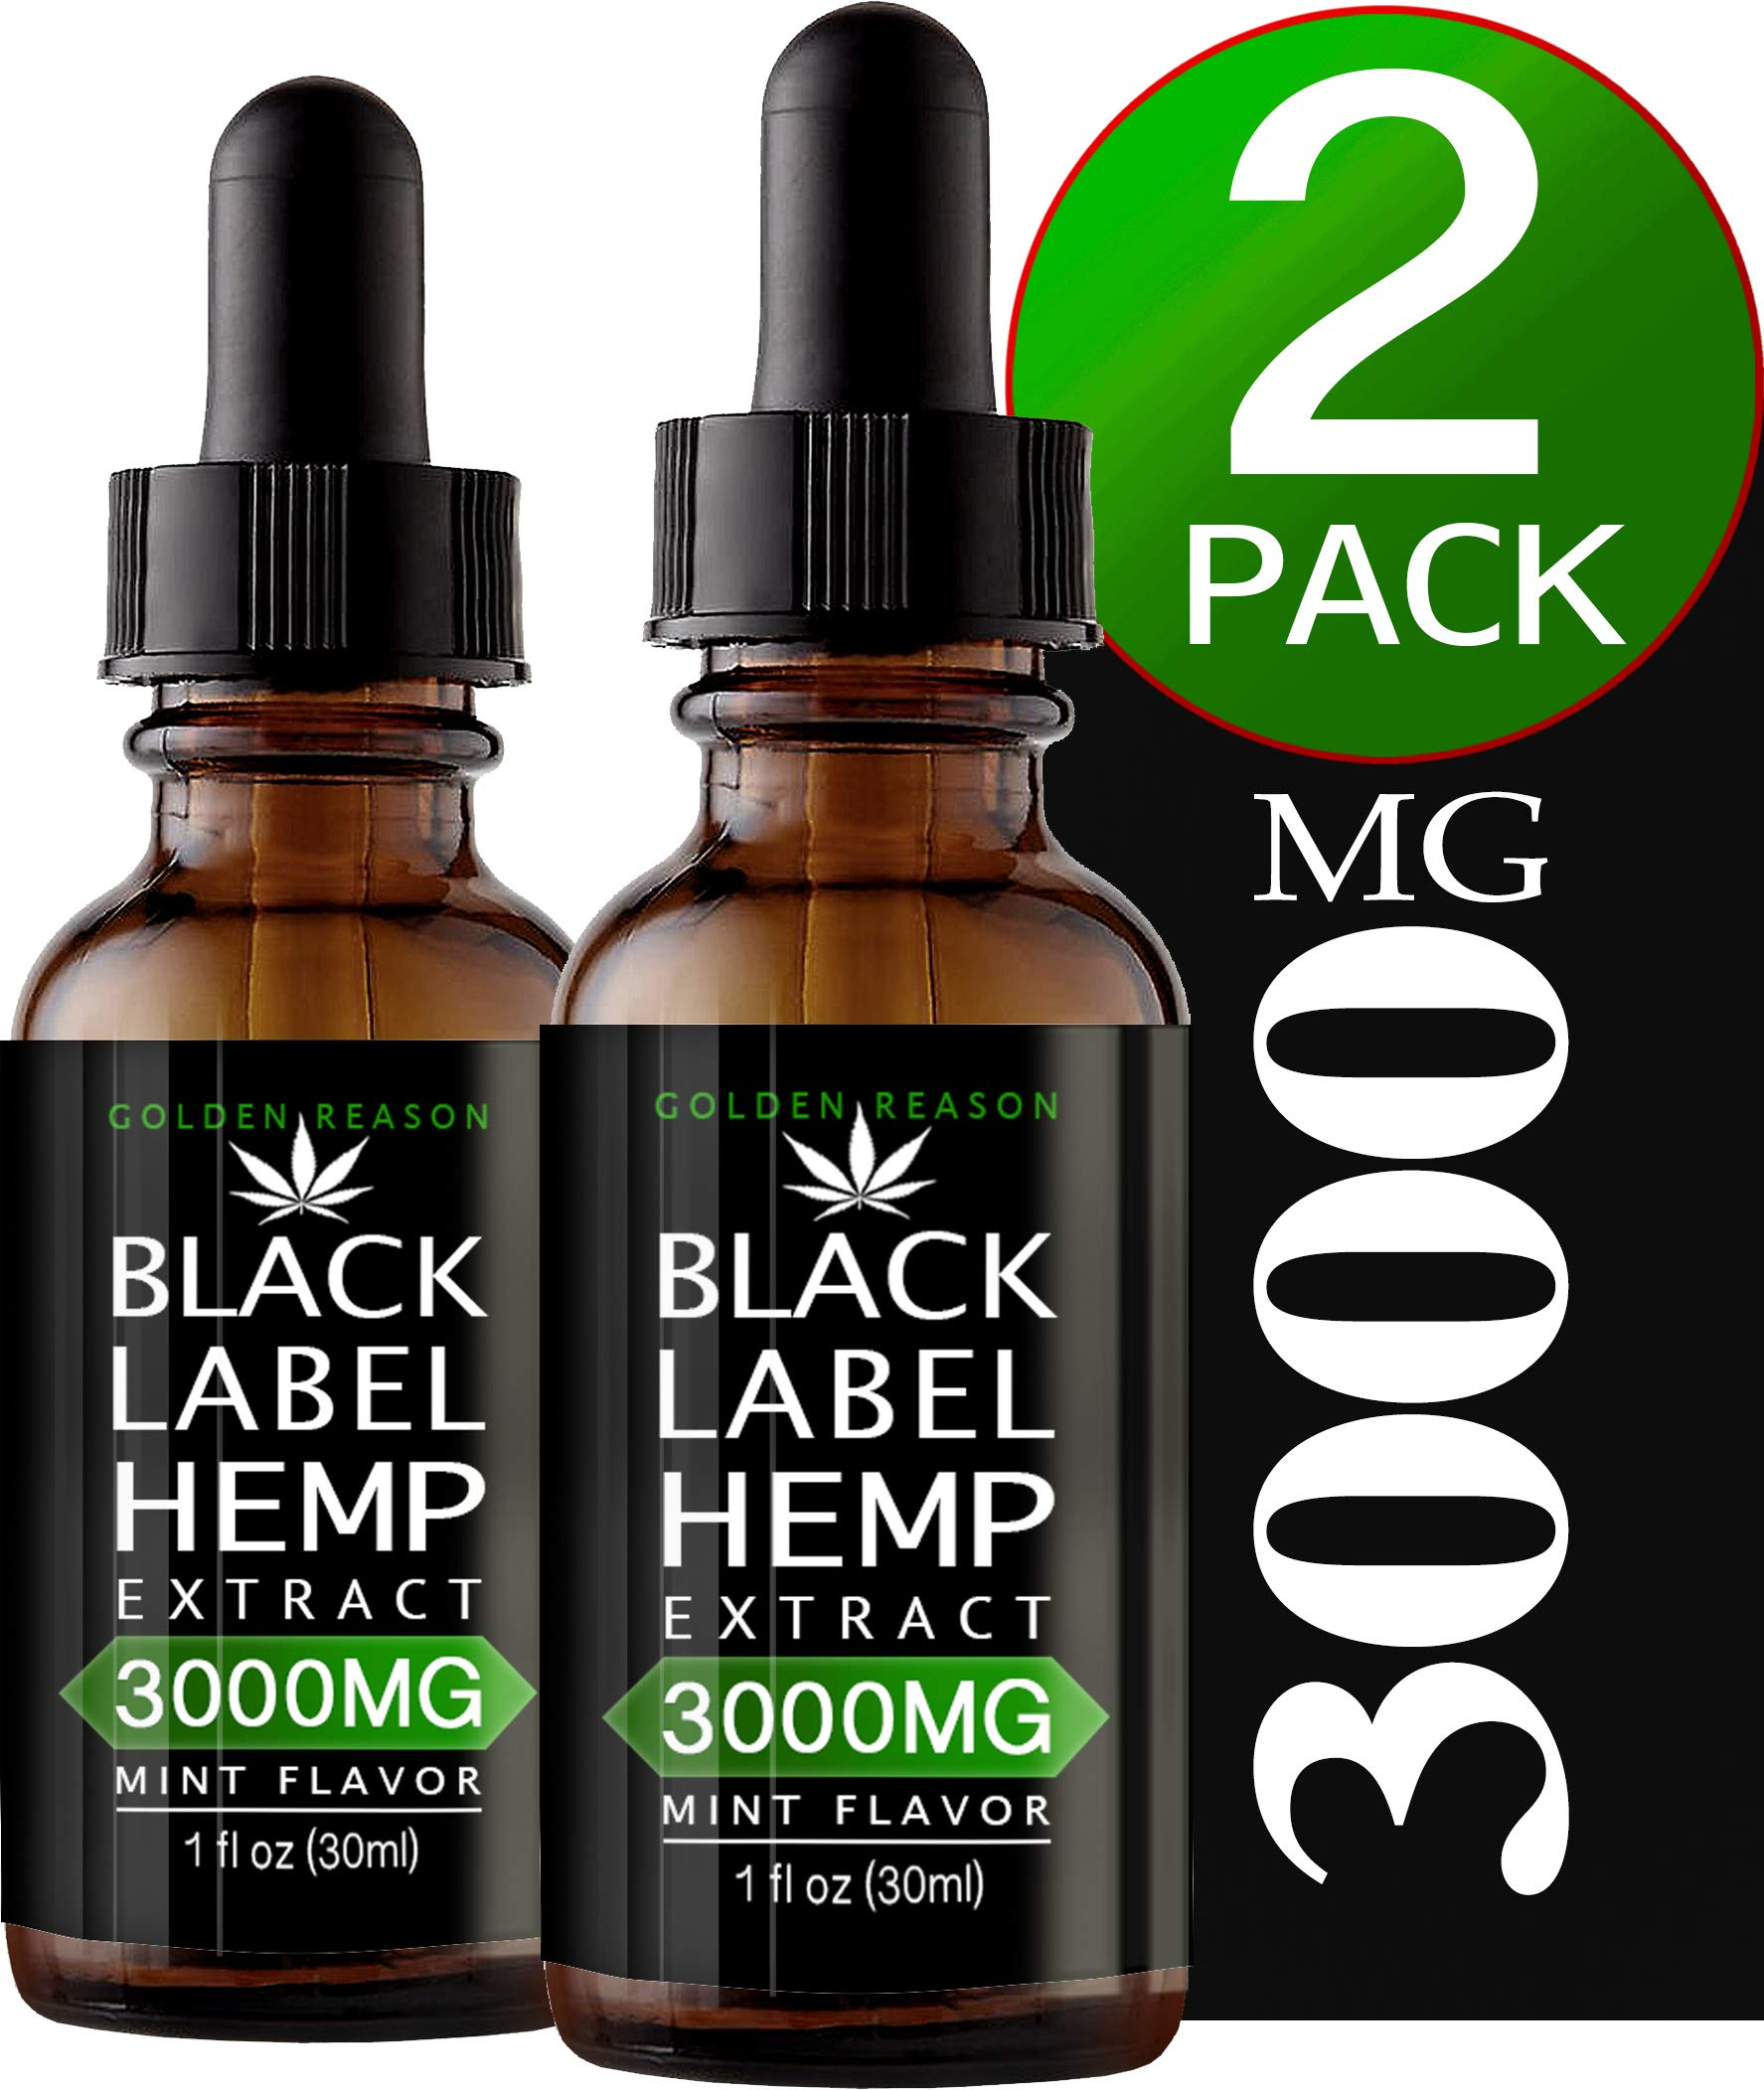 2 Pack Hemp Oil 3000MG. Anxiety Reducer. Pain Relief. Weight Management .Natural Sleep Aid. Helps Improve Nerve Health & Helps Regulate Metabolism. with Natural Mint Flavor.